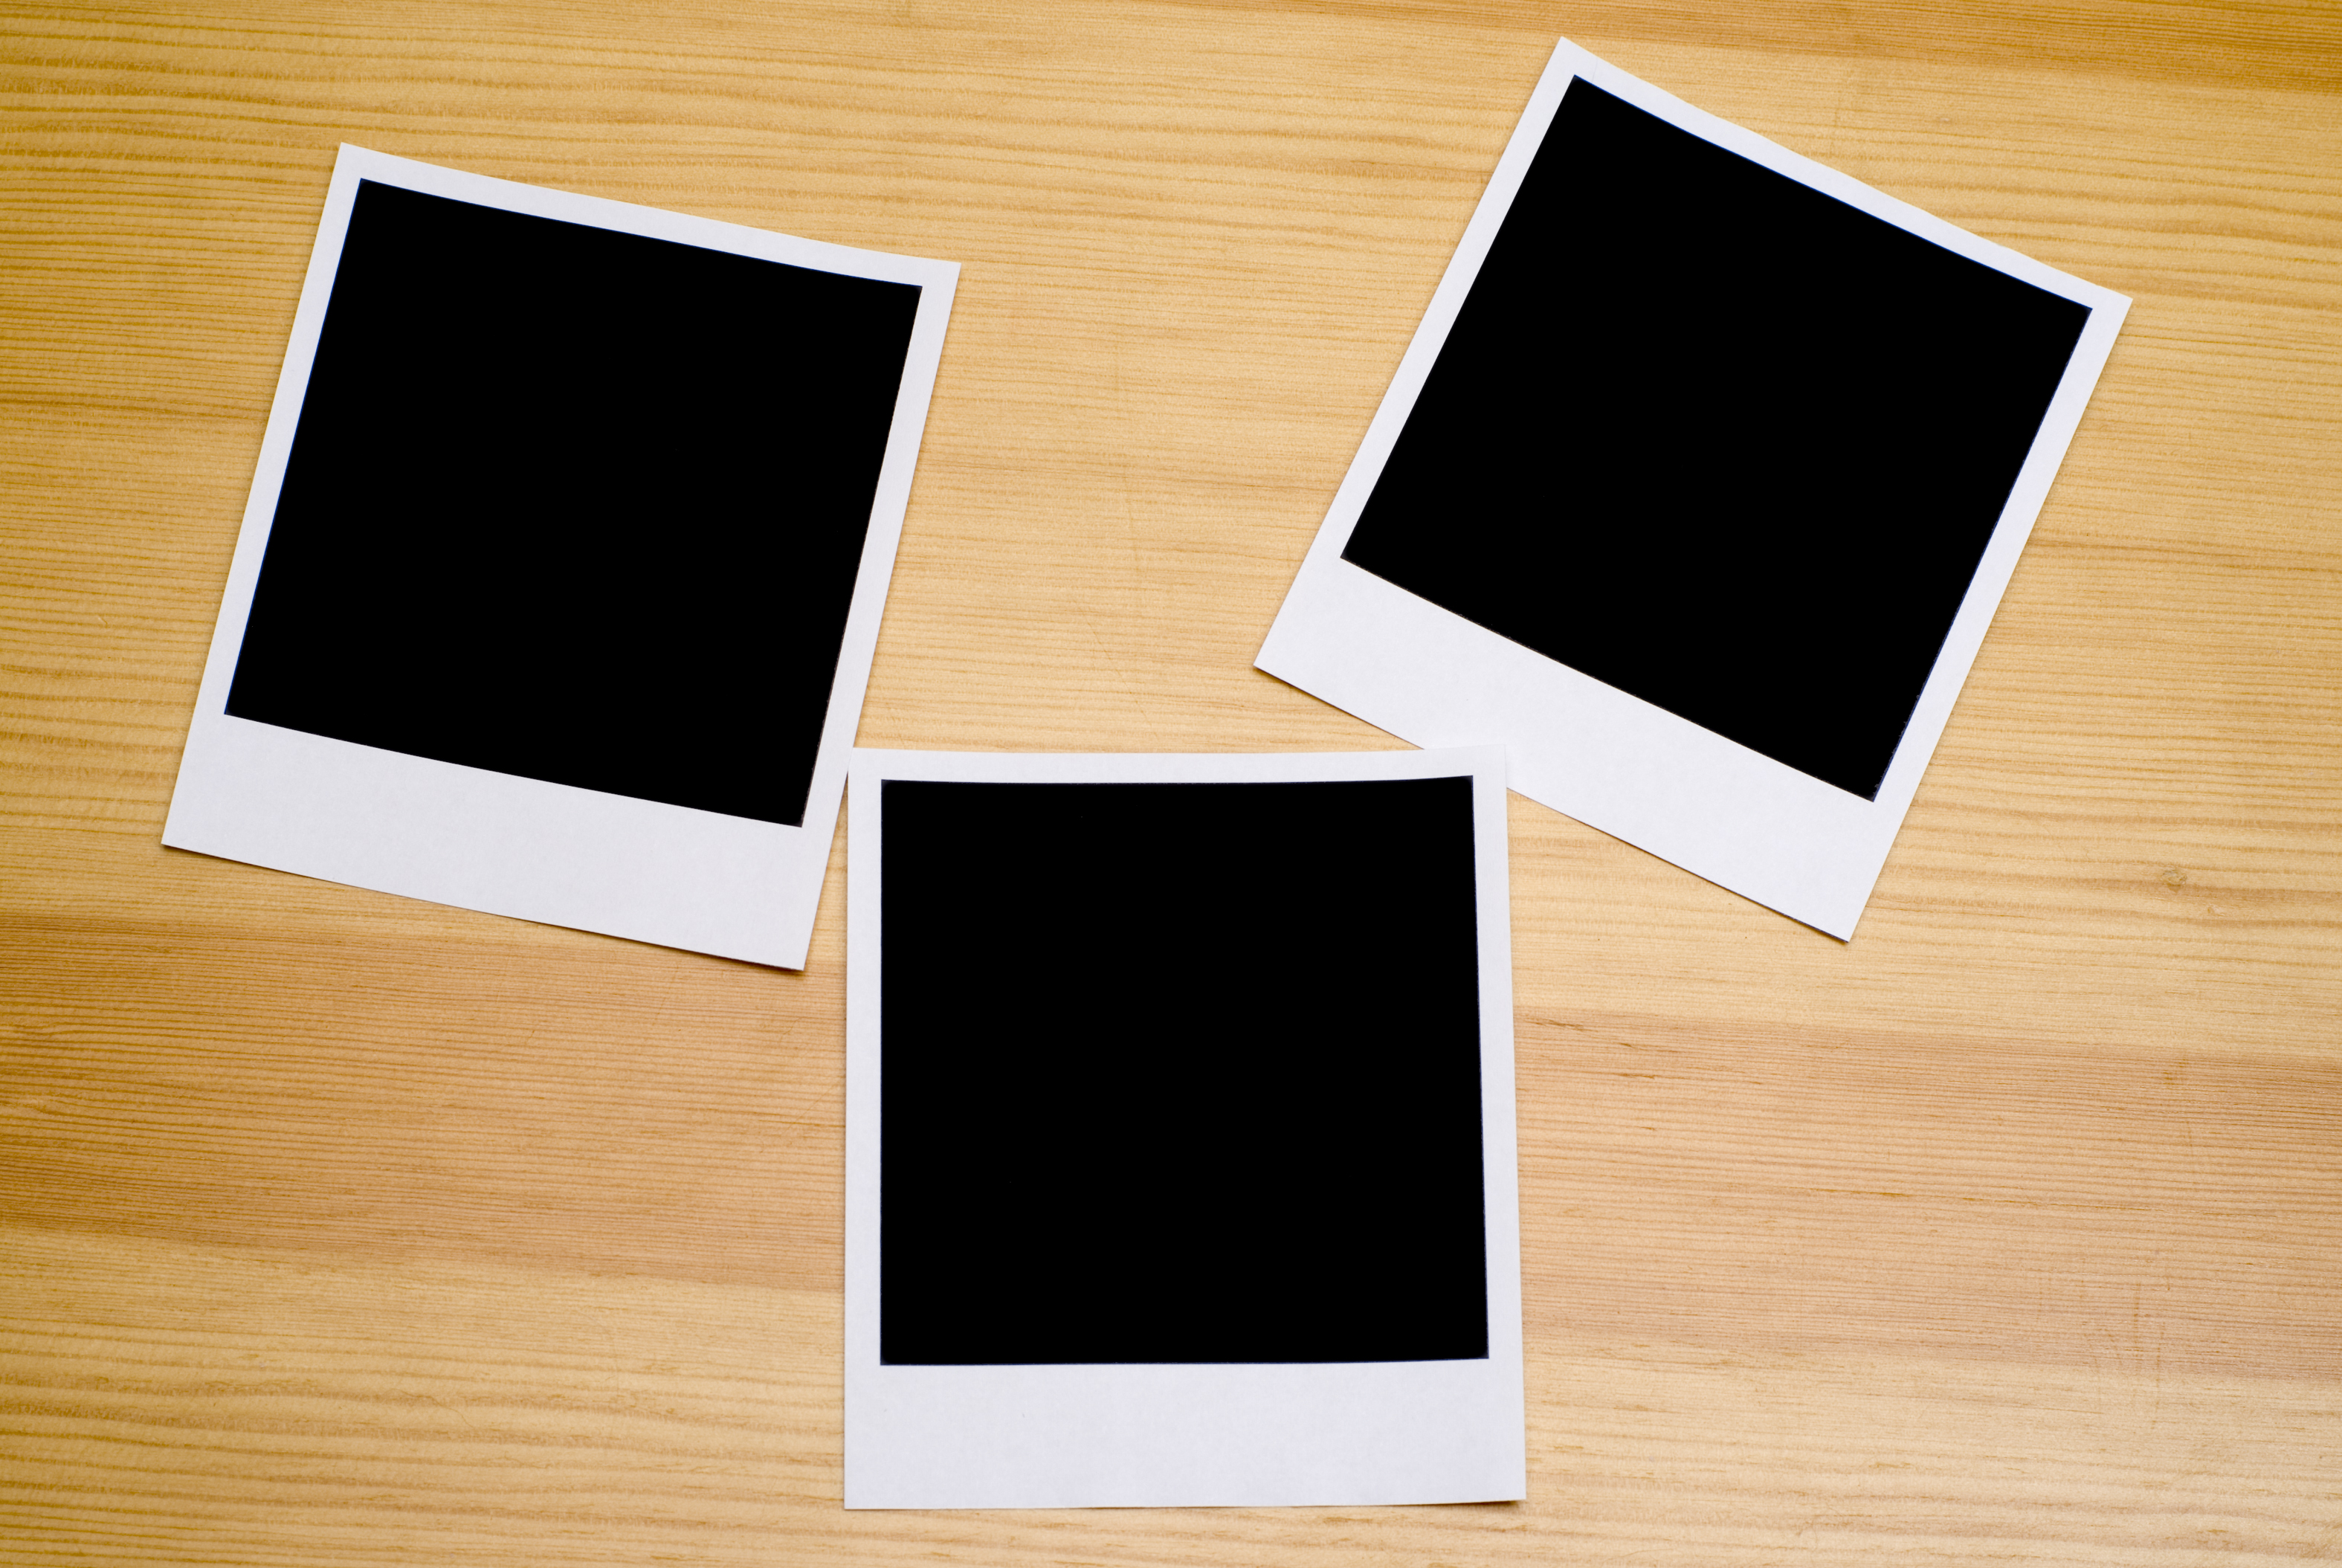 Empty photo pictures on a table.